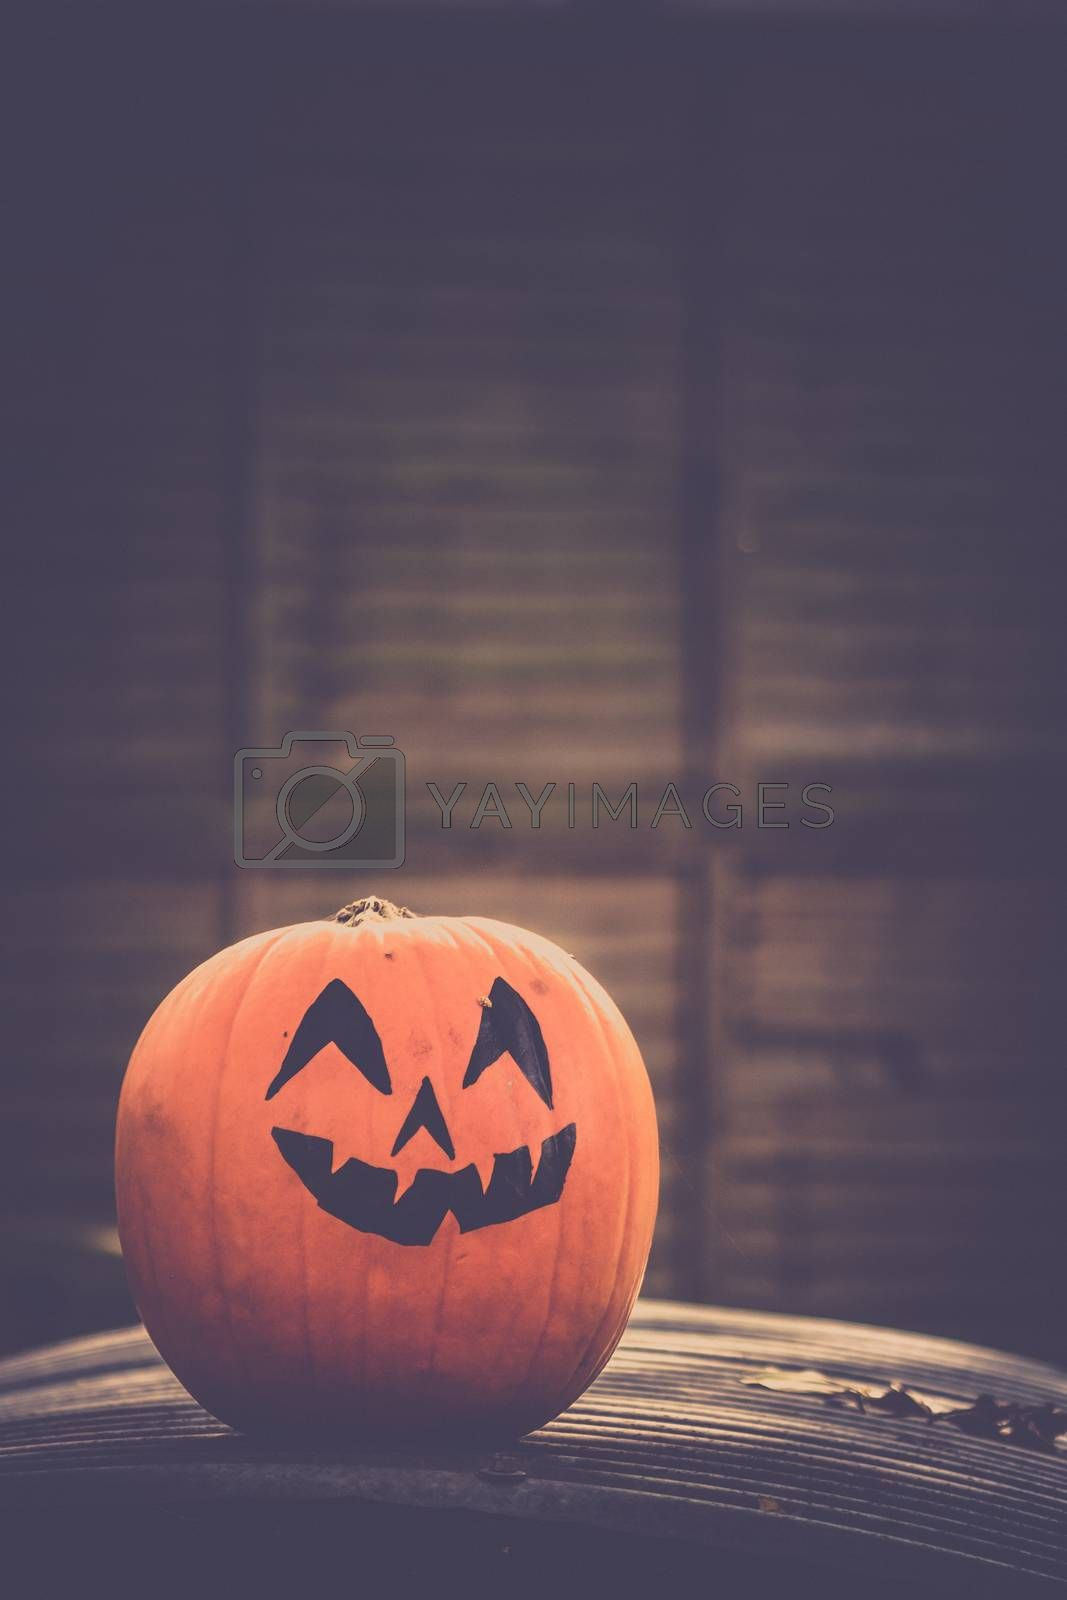 Large pumpkin with a scary face drawing on it